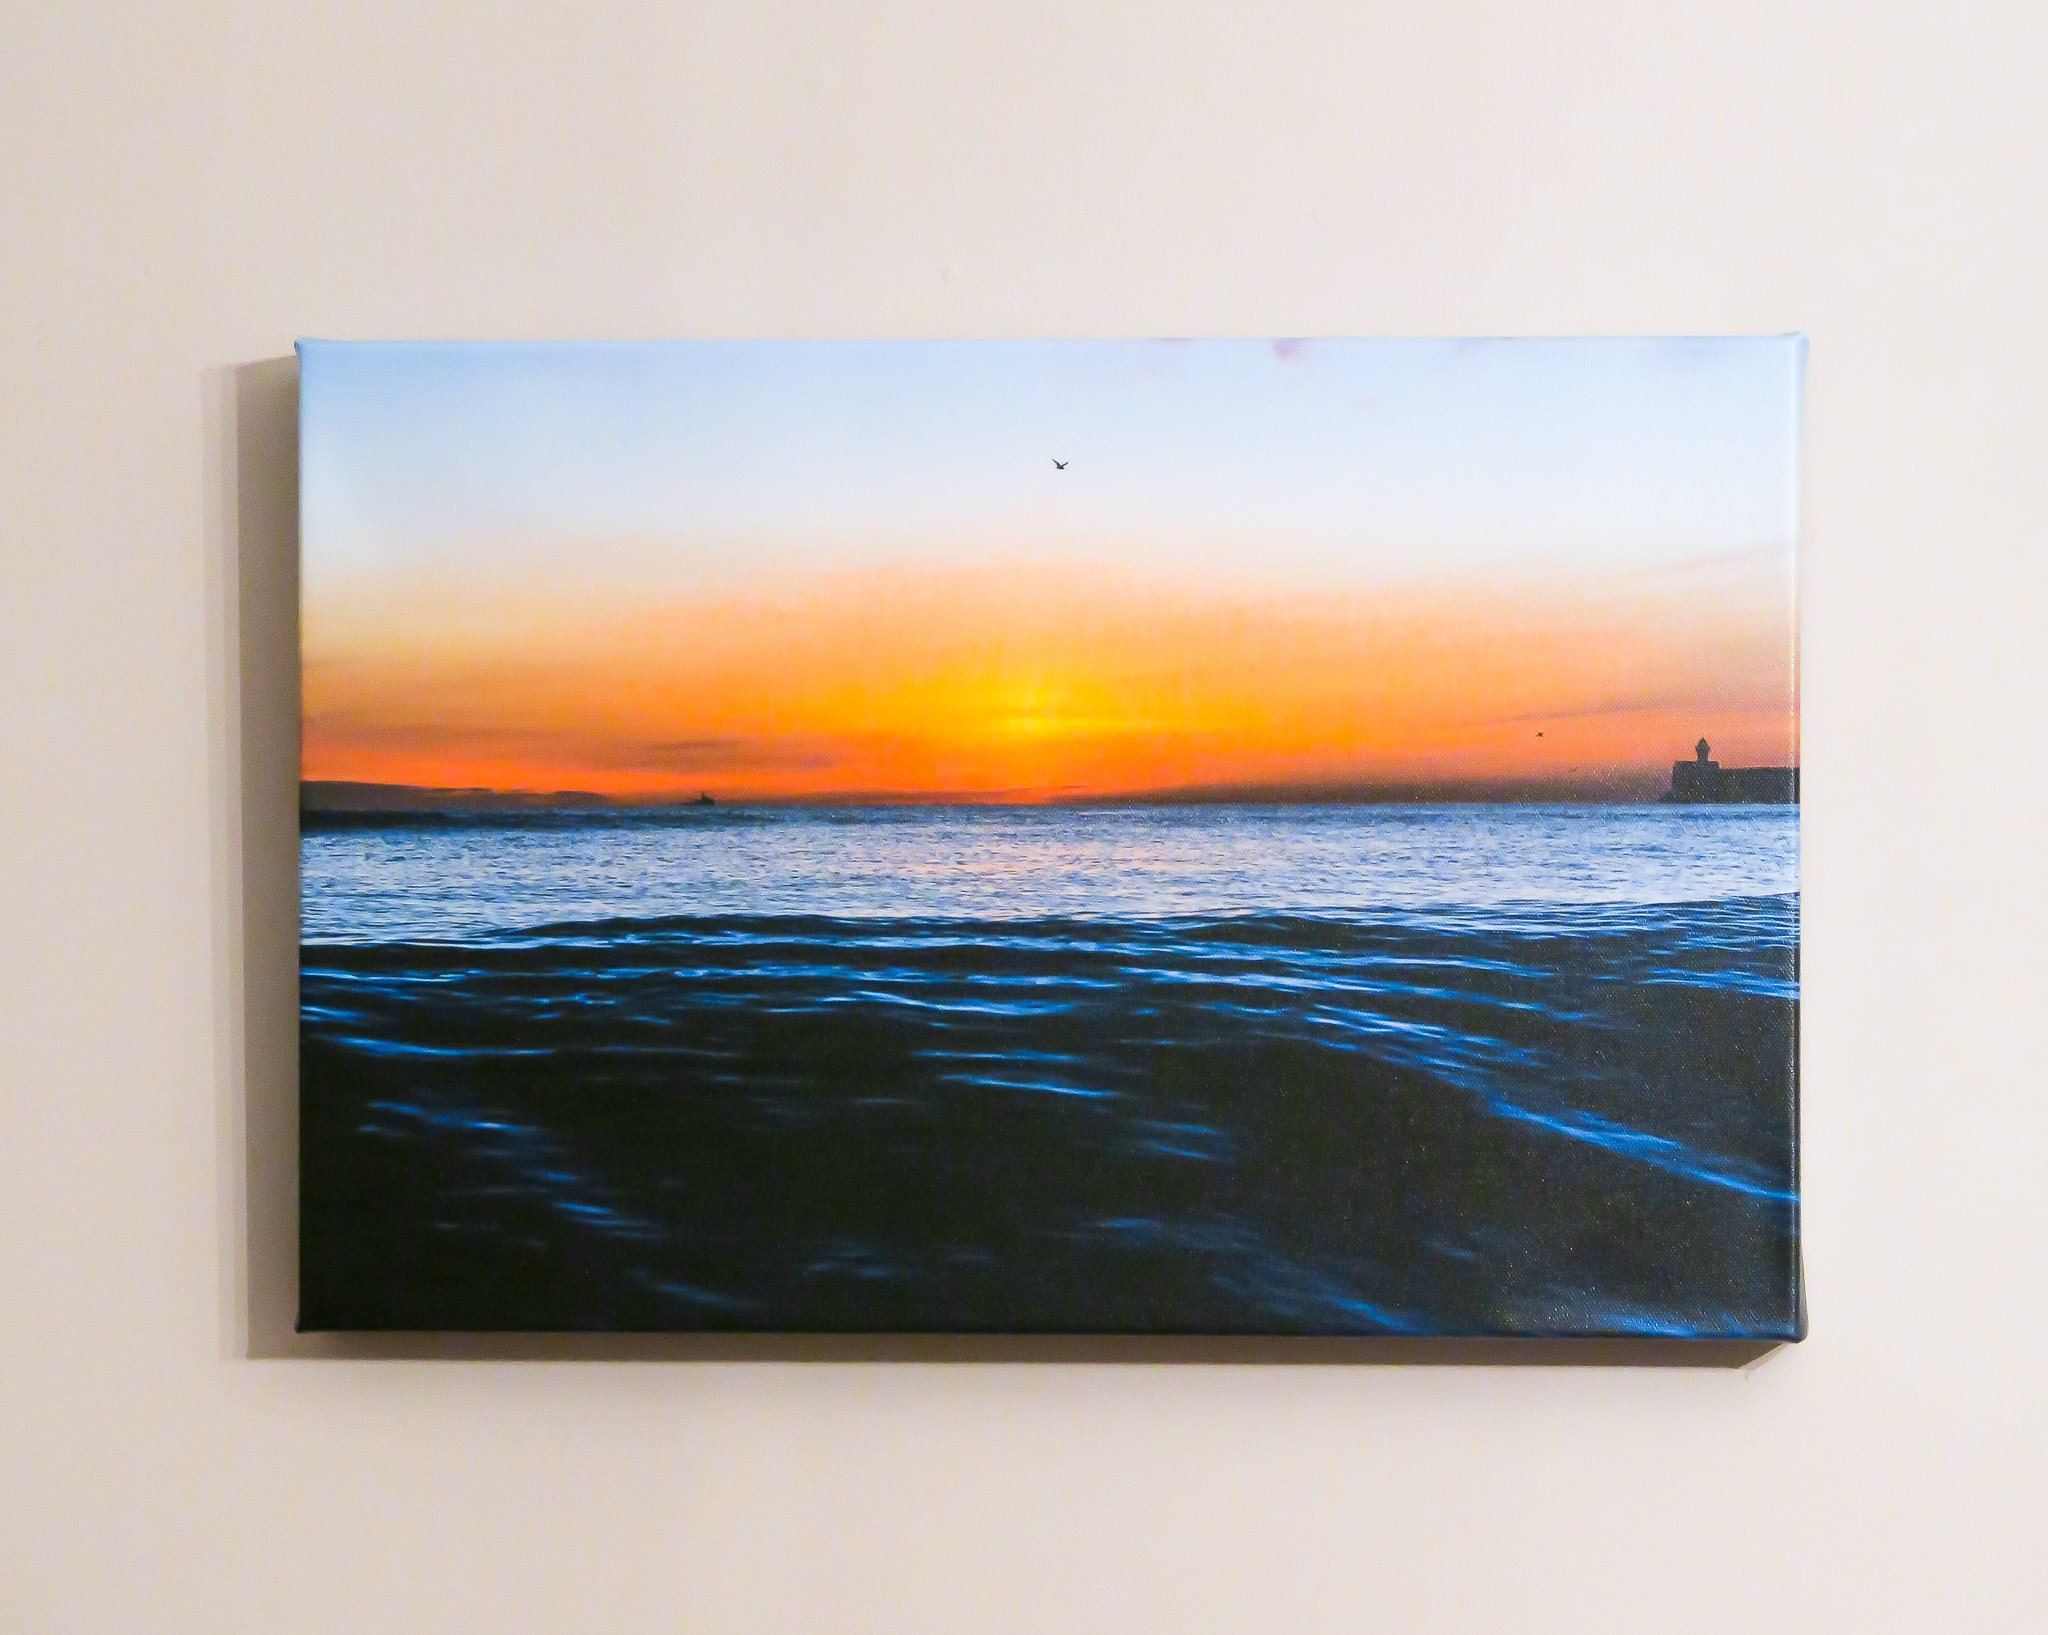 'Good Morning' on canvas.